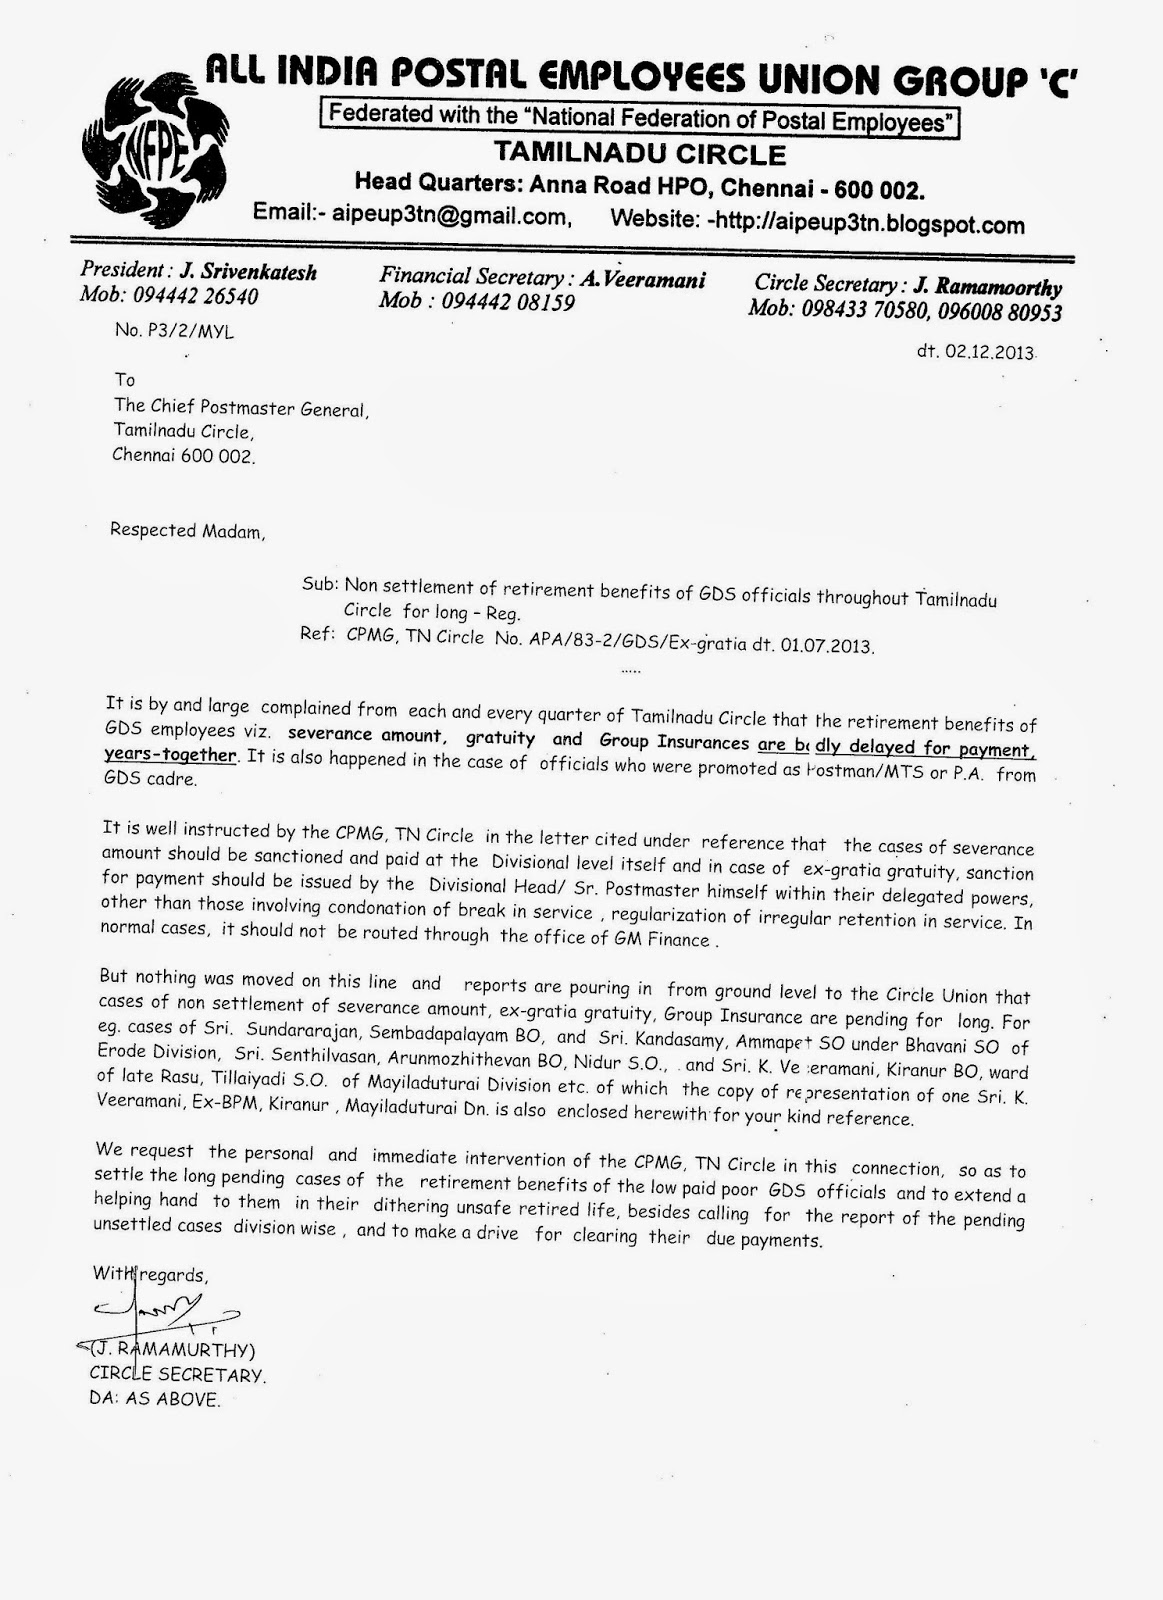 Aipeup3tn circle union letter to cpmg tn on delay in payment of circle union letter to cpmg tn on delay in payment of retirement benefits of gds thecheapjerseys Image collections